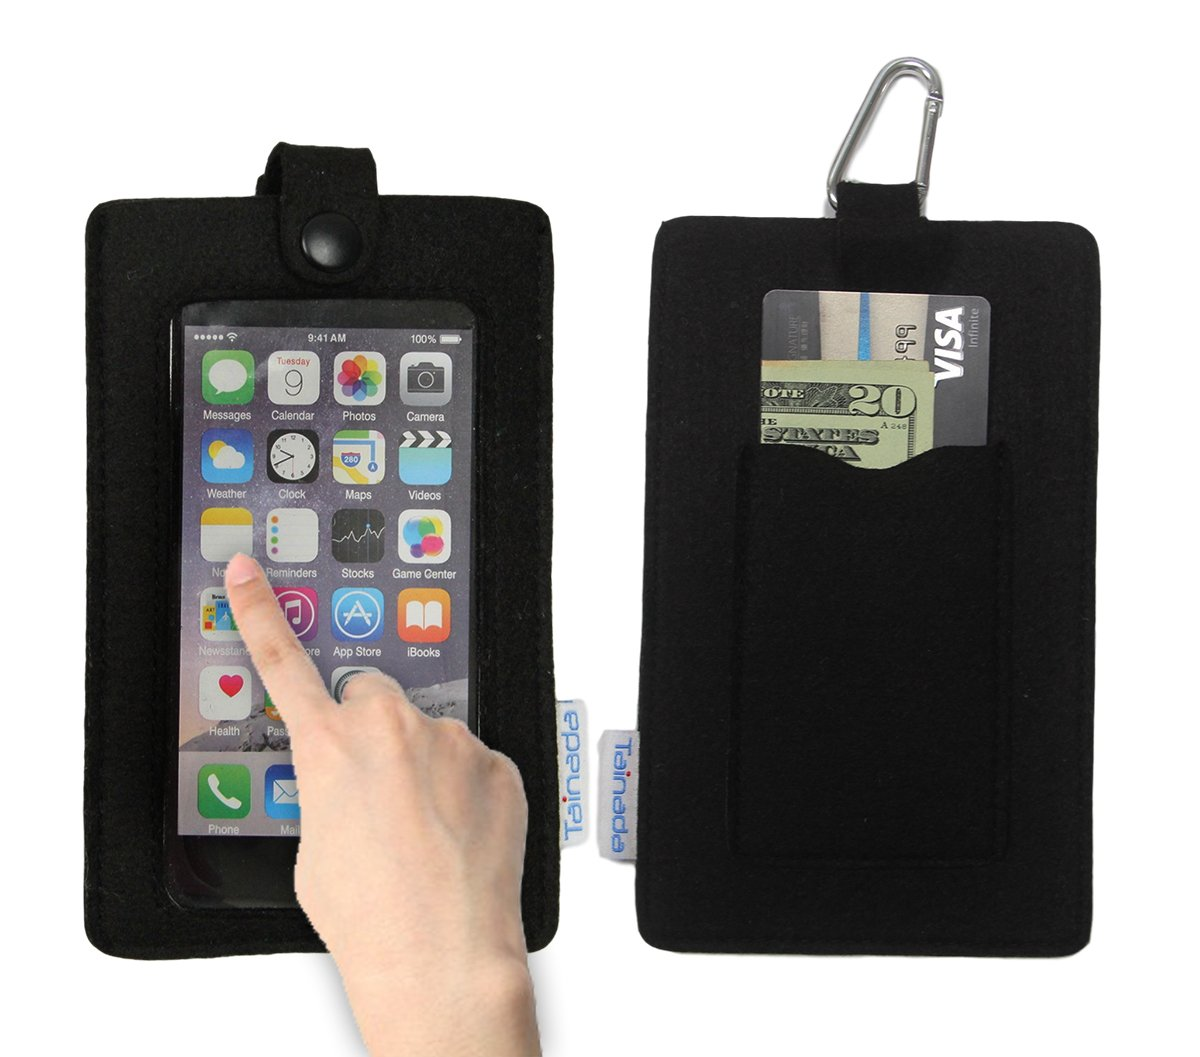 """Tainada 4.7-5.2"""" Multi-Purpose Smartphone Felt Sleeve Pouch Case with Clear View Window Touch-Screen Function and Card Holder for iPhone 8, X, 7, 6s/6, Samsung Galaxy S8, LG G6 and more! (Black)"""